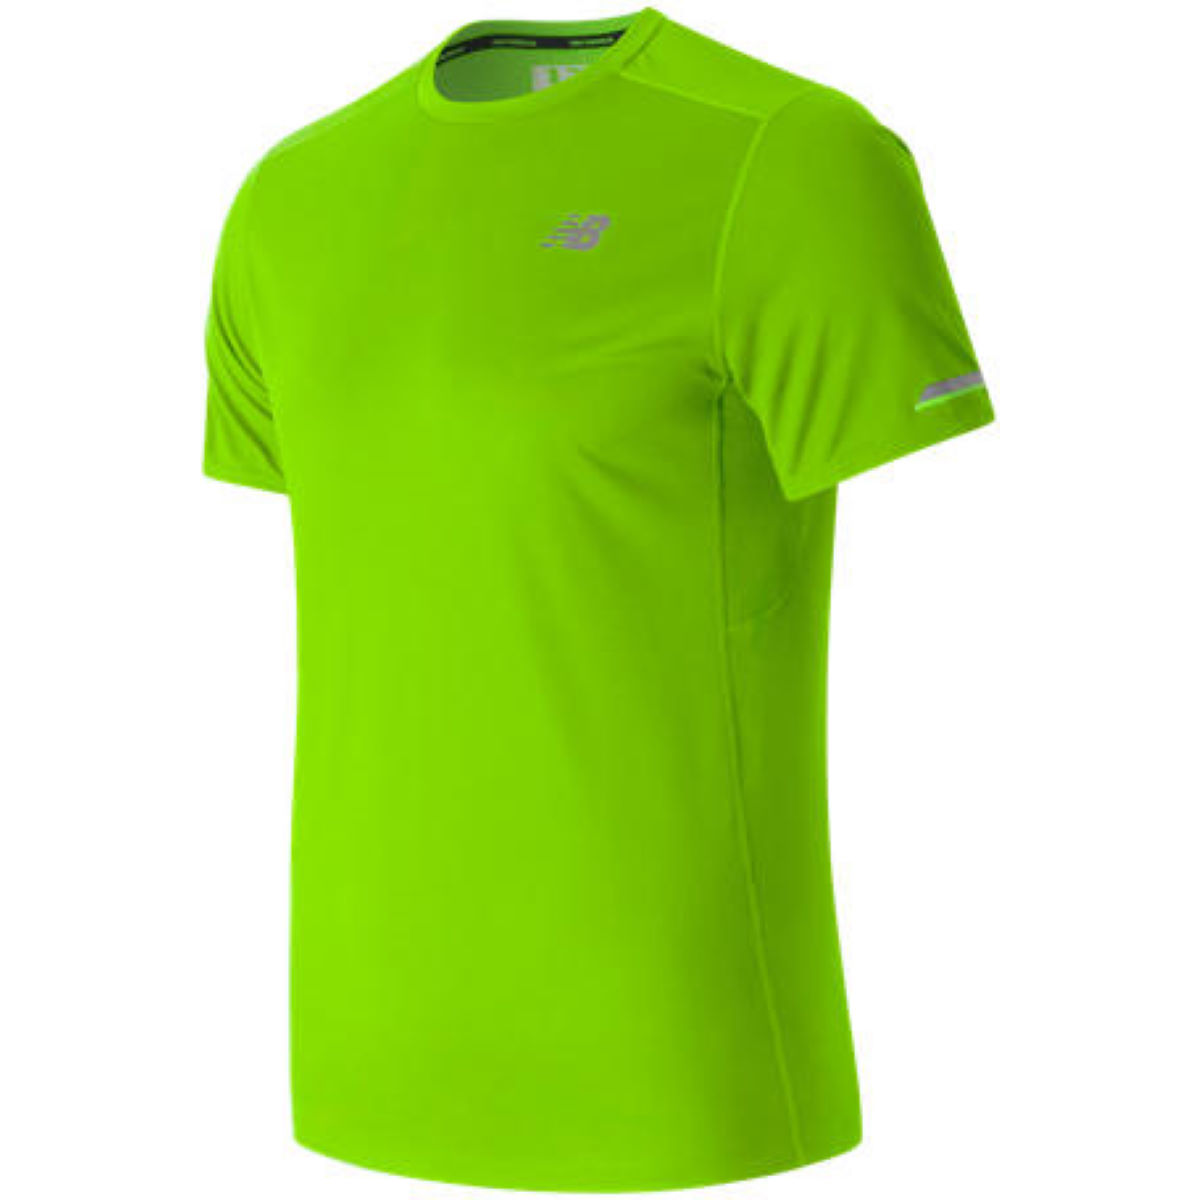 Maillot de running New Balance Ice (manches courtes) - S ENERGY LIME